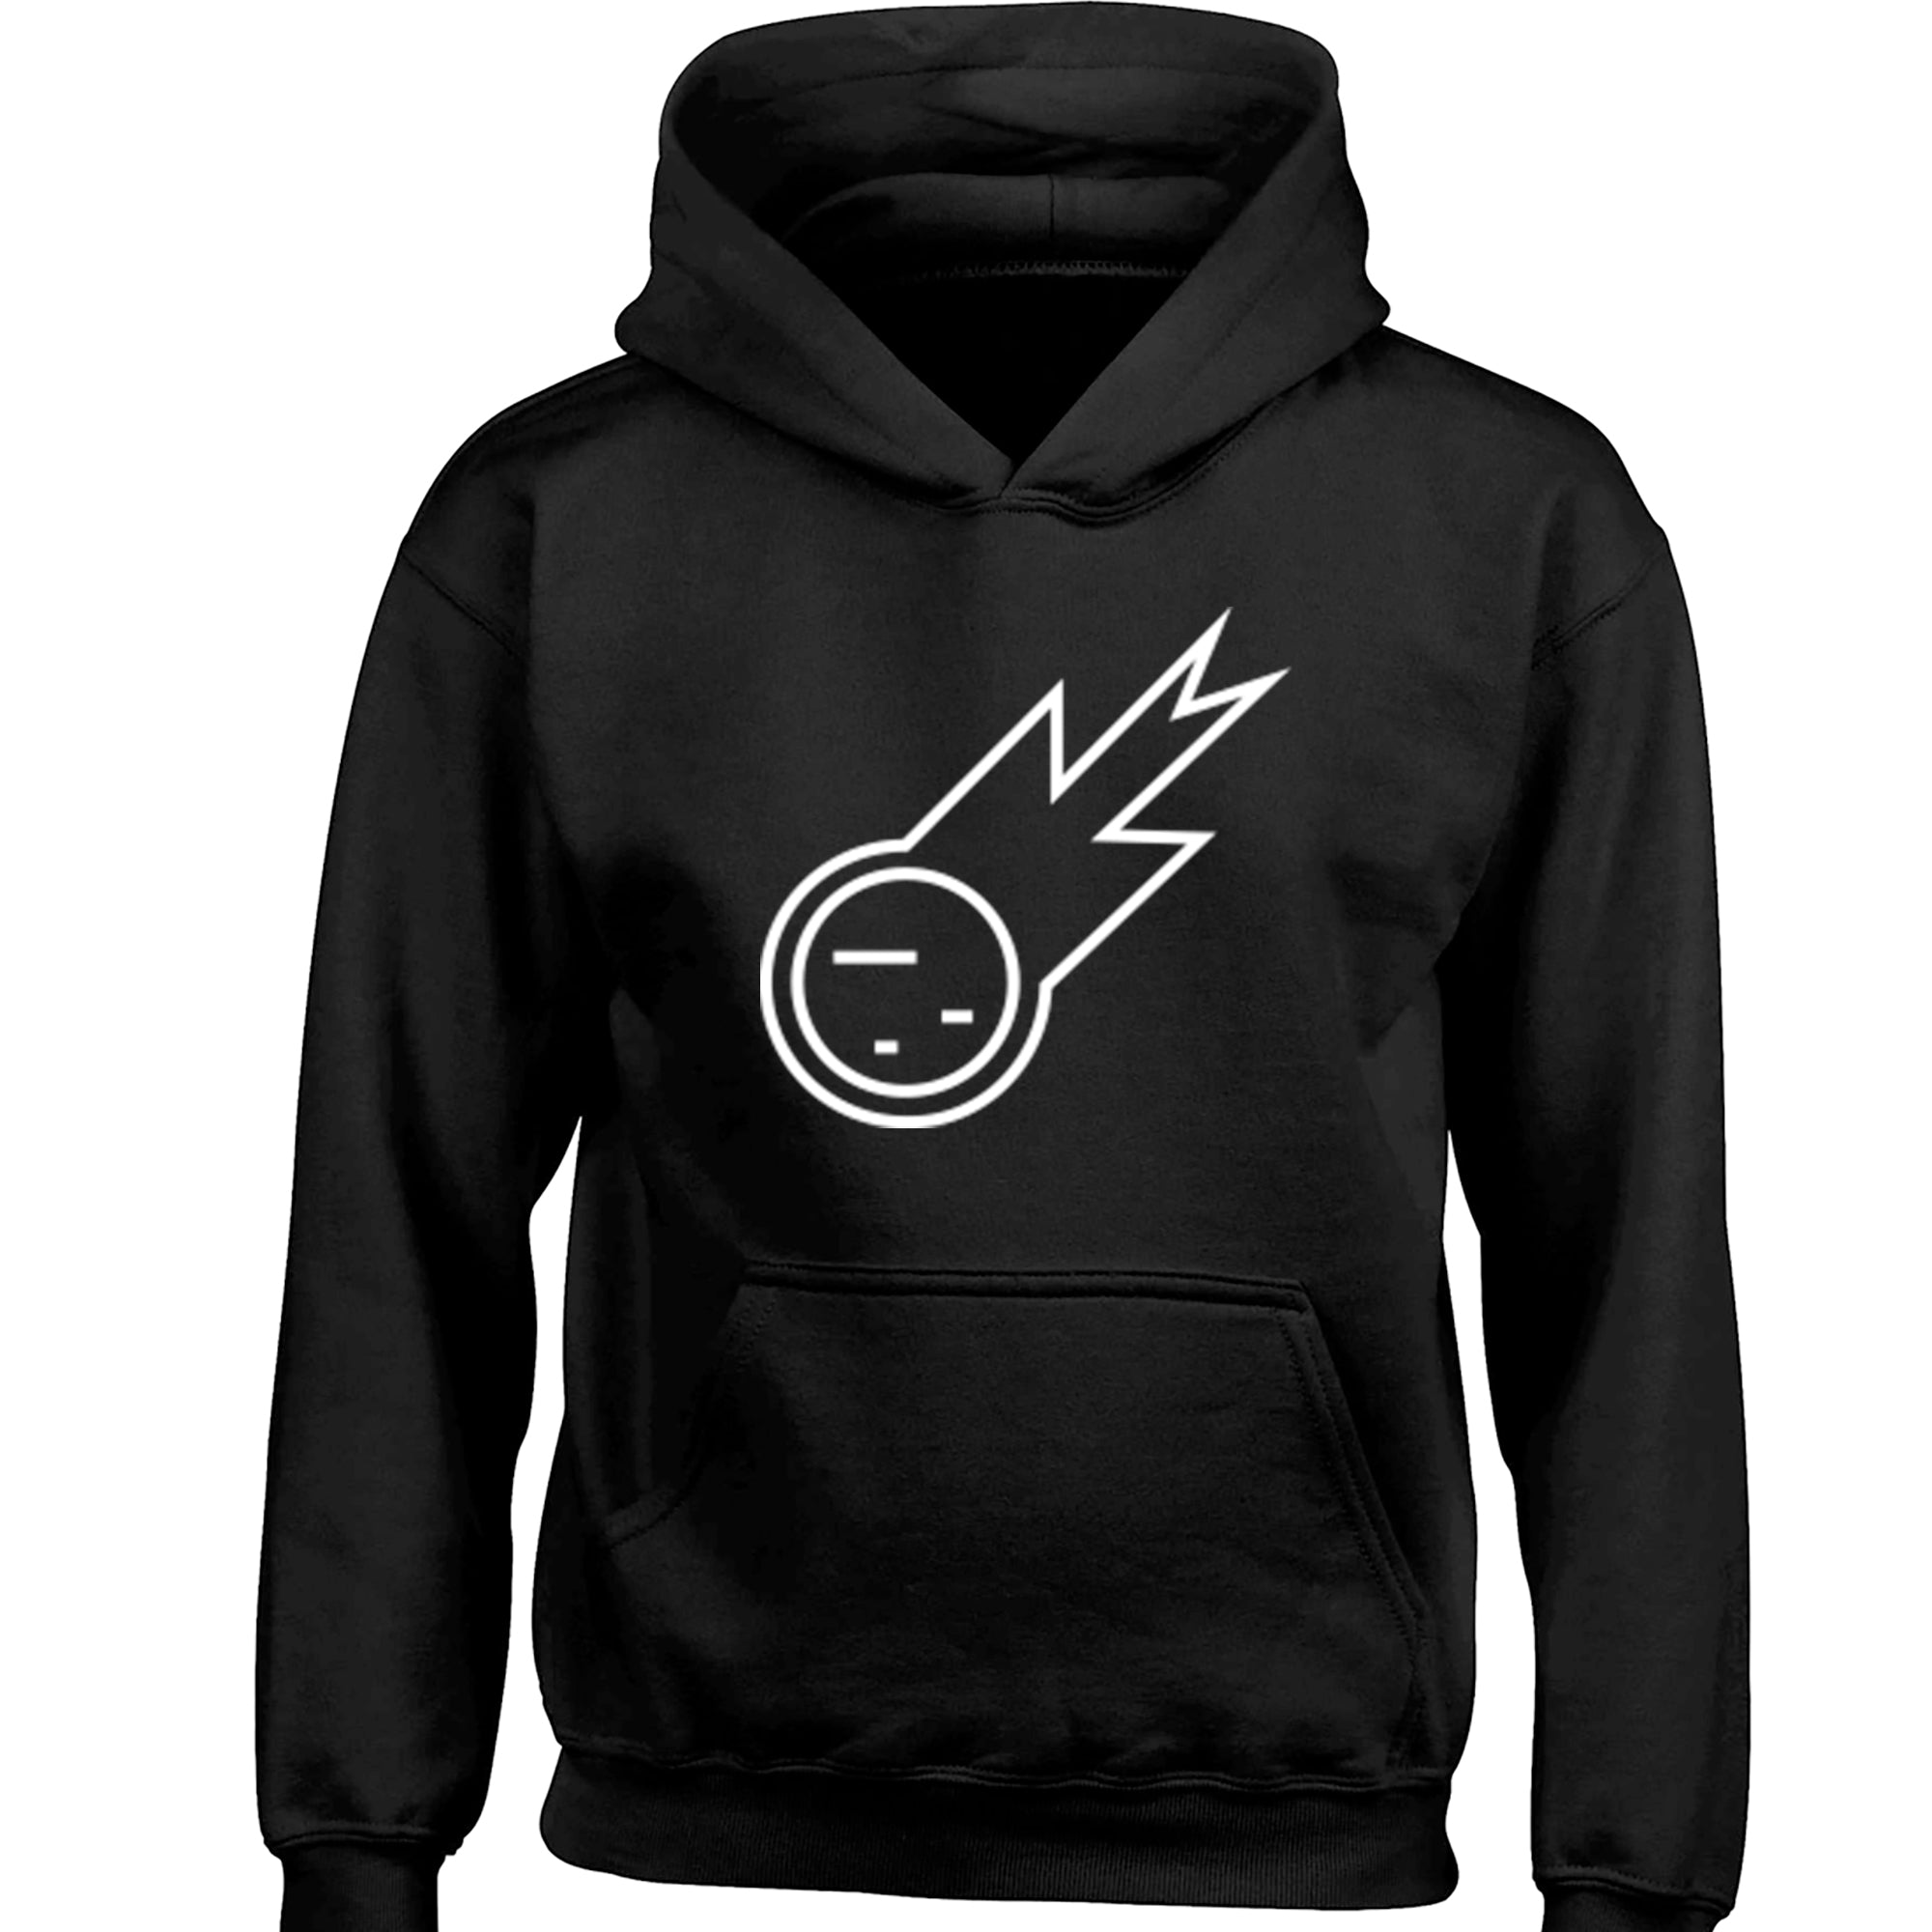 Asteroid Childrens Ages 3/4-12/14 Unisex Hoodie S0355 - Illustrated Identity Ltd.